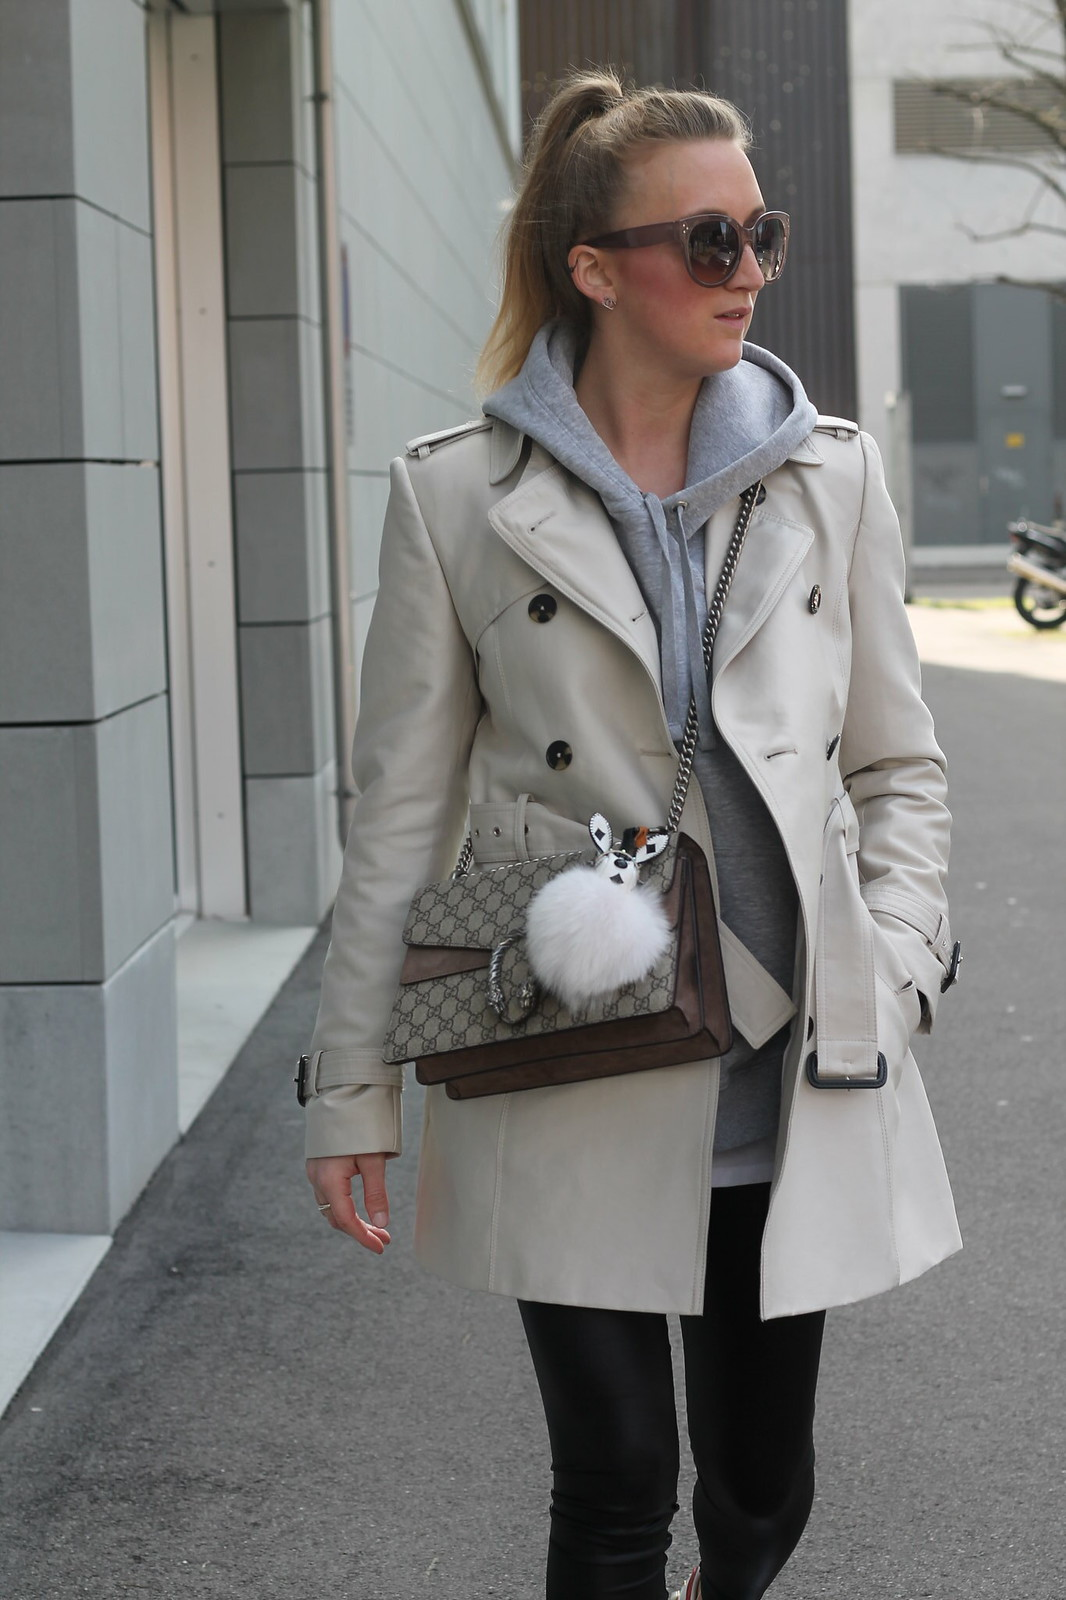 trenchcoat-whole-outfit-details-wiebkembg